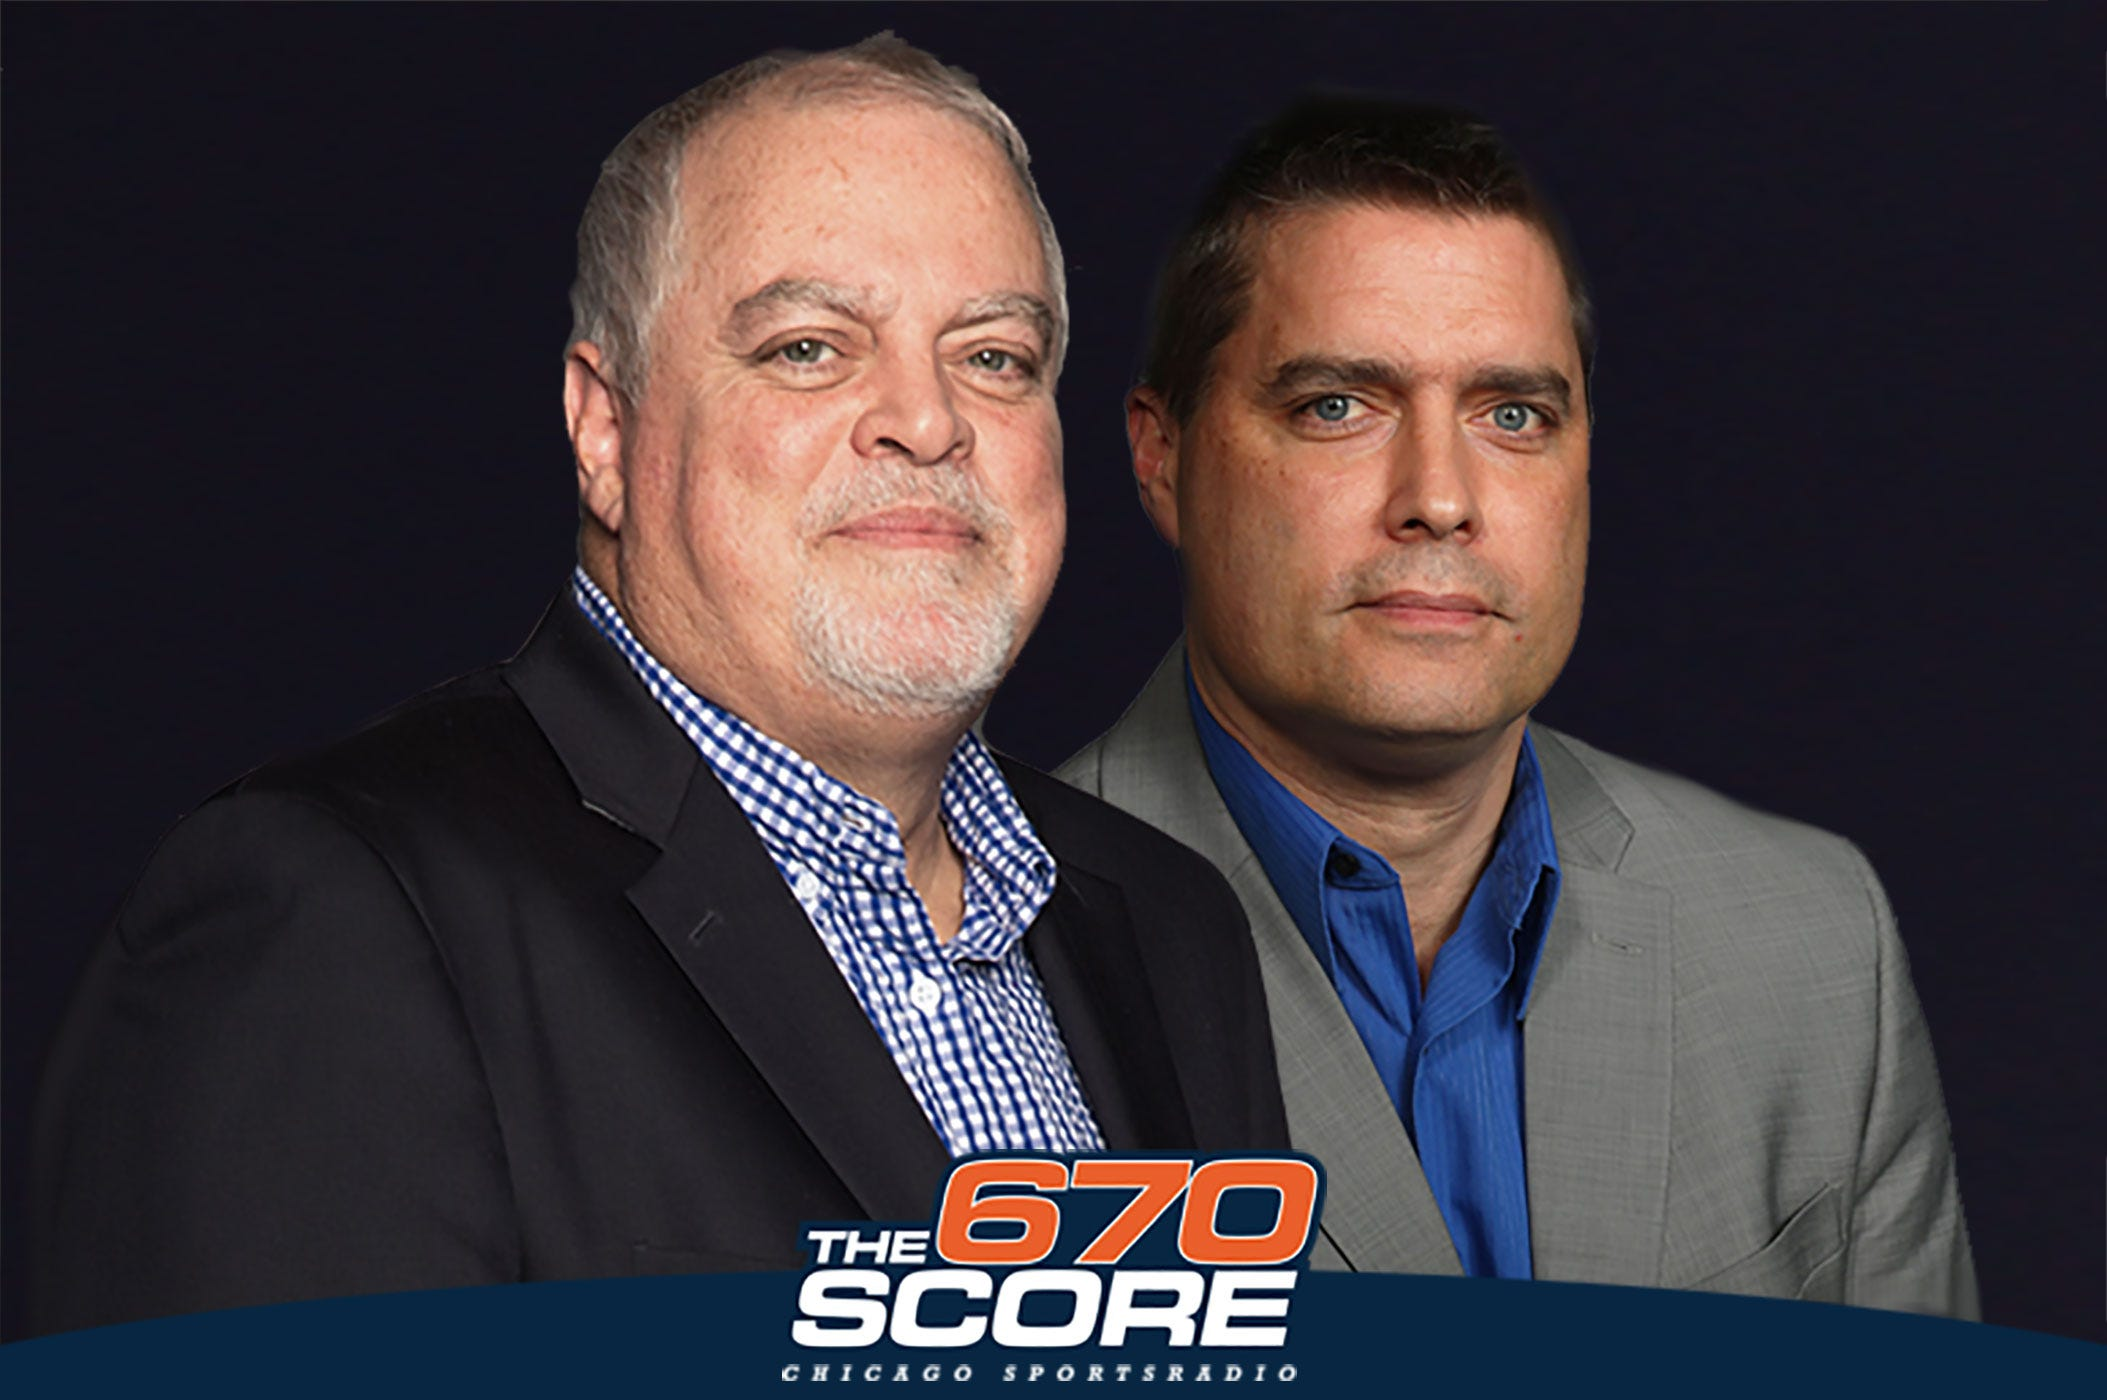 The Mully & Hanley Show on 670 The Score